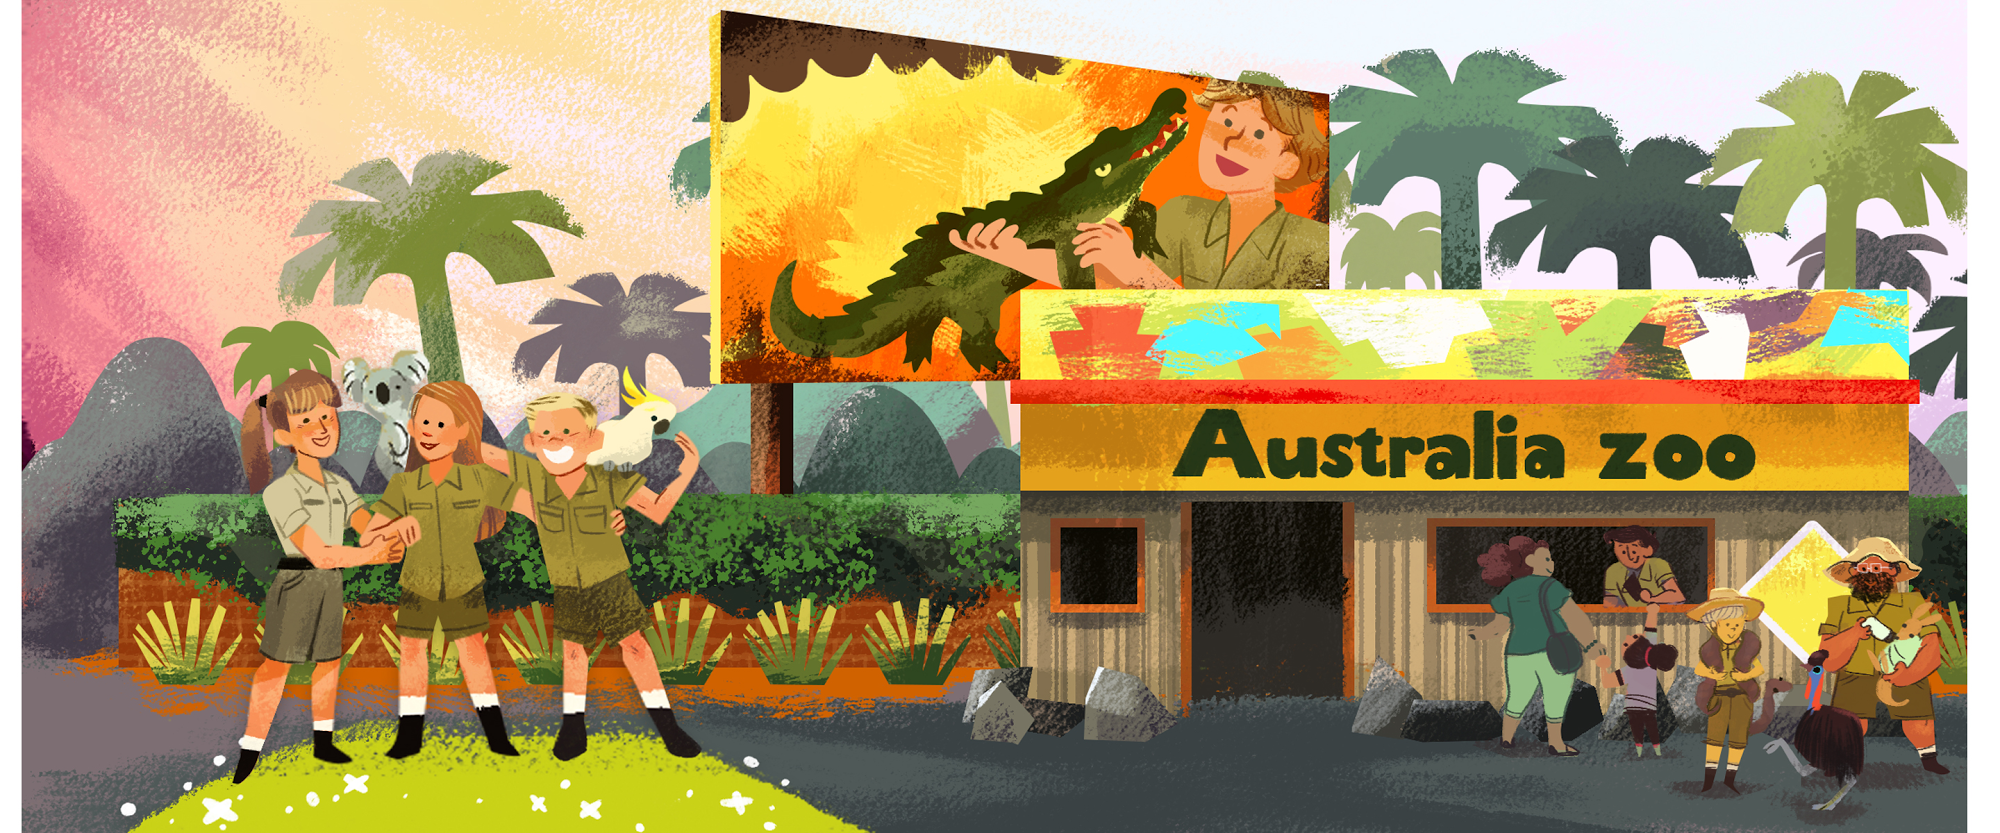 A Doodle honoring Steve Irwin: zookeeper, conservationist and father